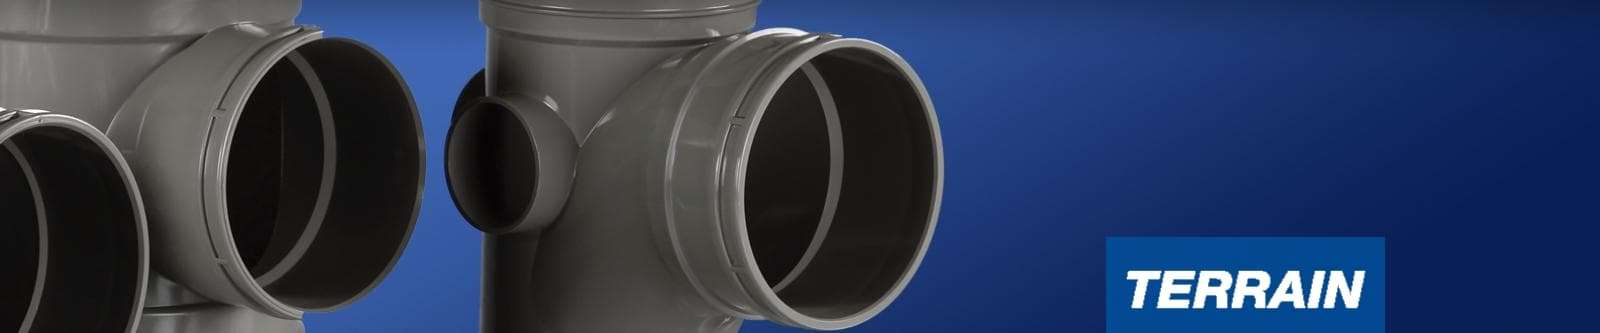 Polypipe Terrain commercial and public buildings drainage and supply pipe systems PVC